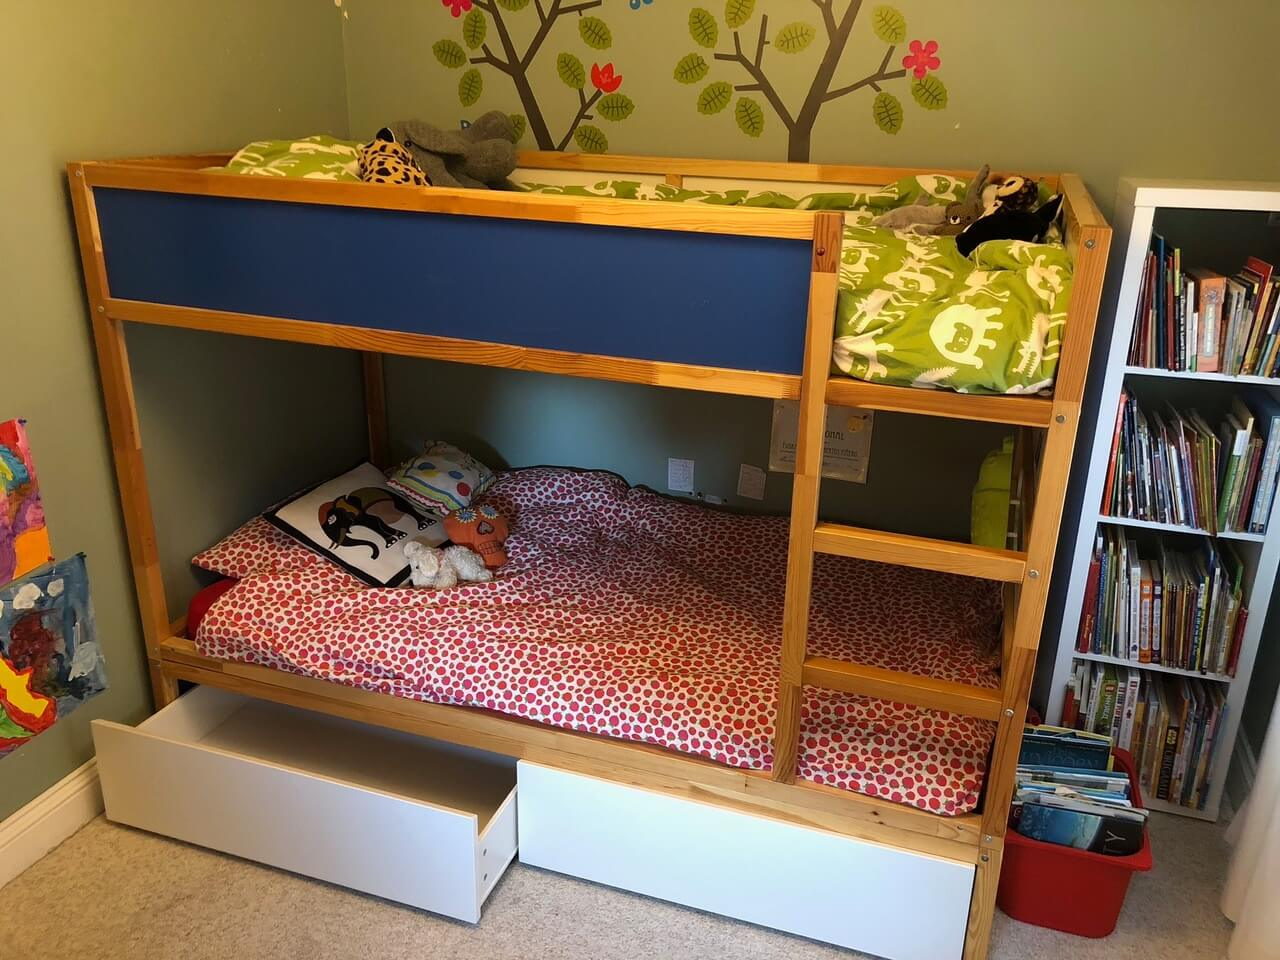 Bank Bed Ikea Hacking The Kura Into A Bunk Bed With Storage - Ikea Hackers